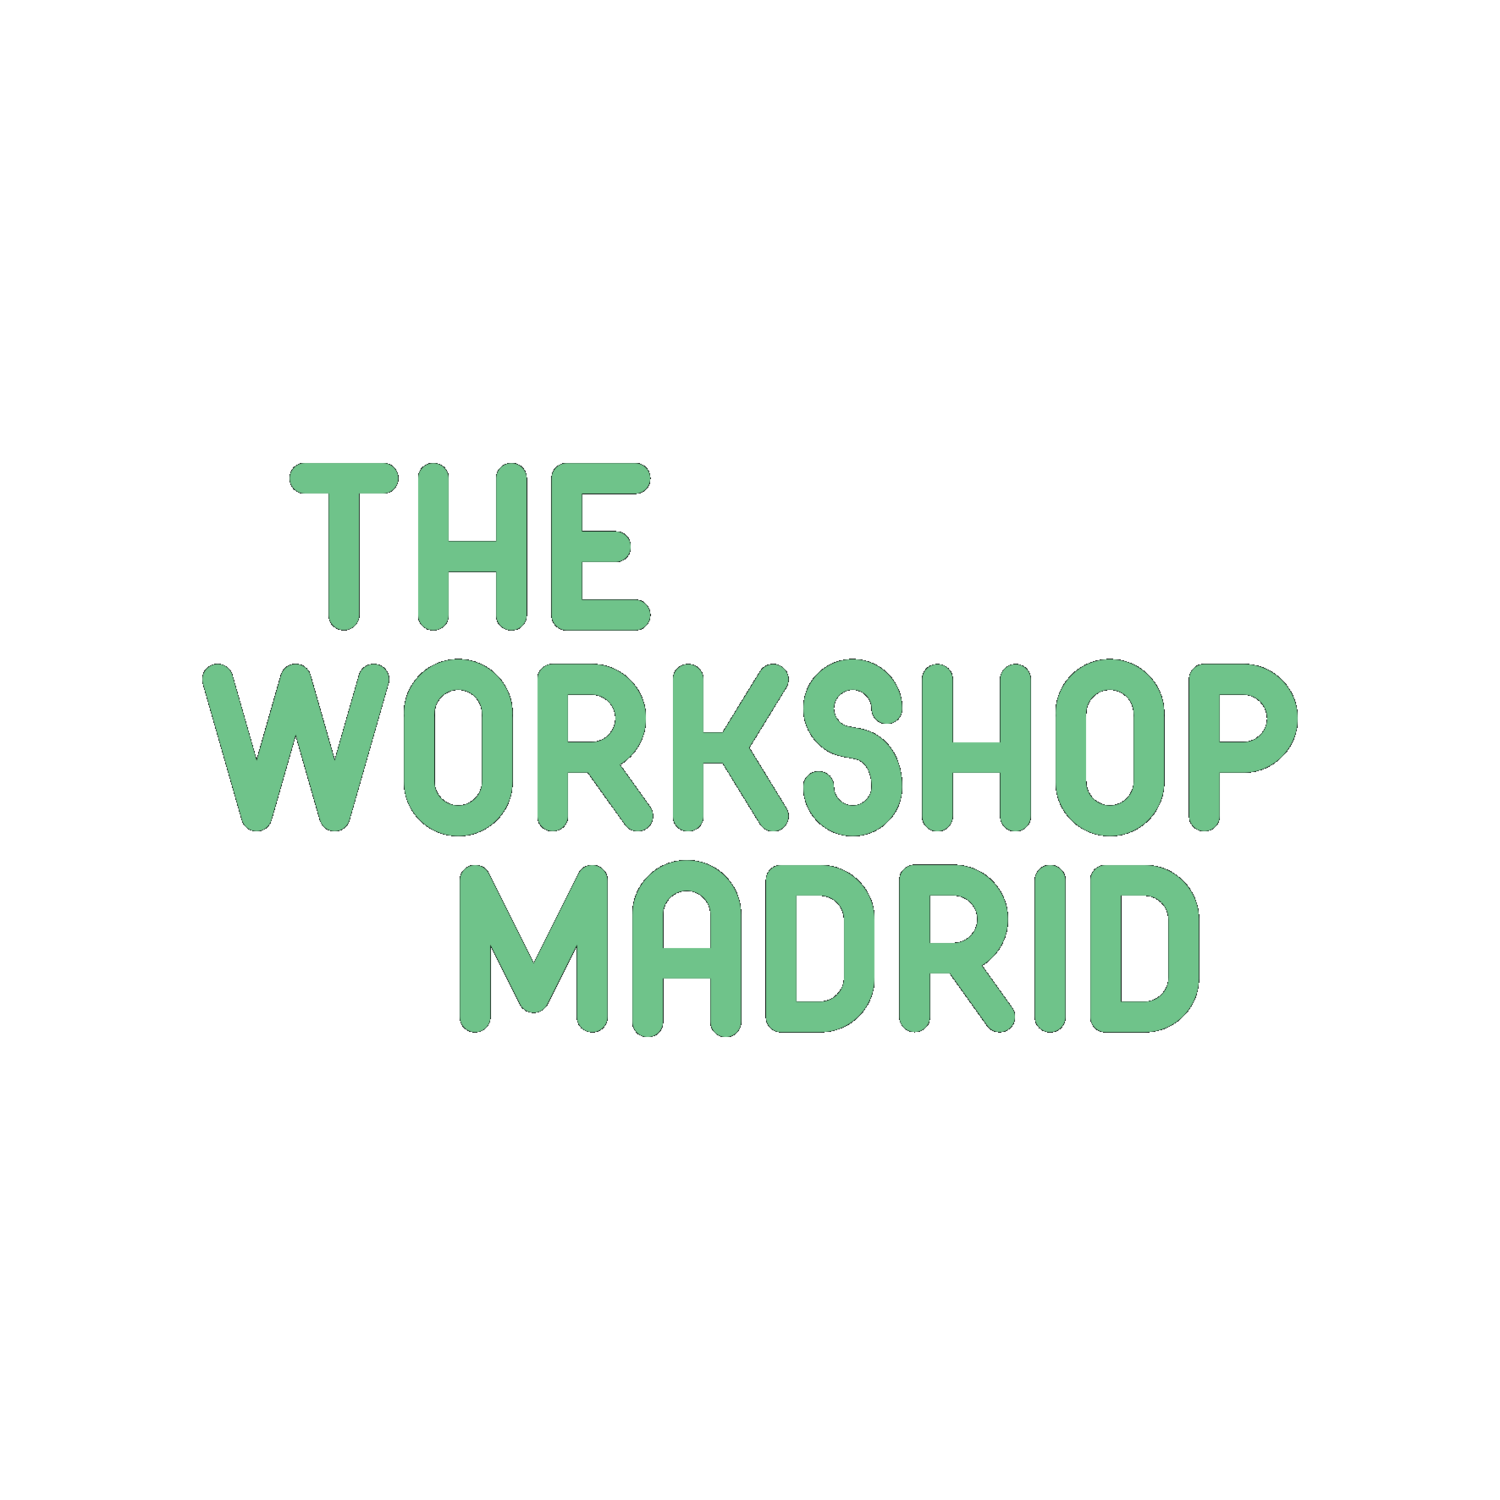 THE WORKSHOP MADRID